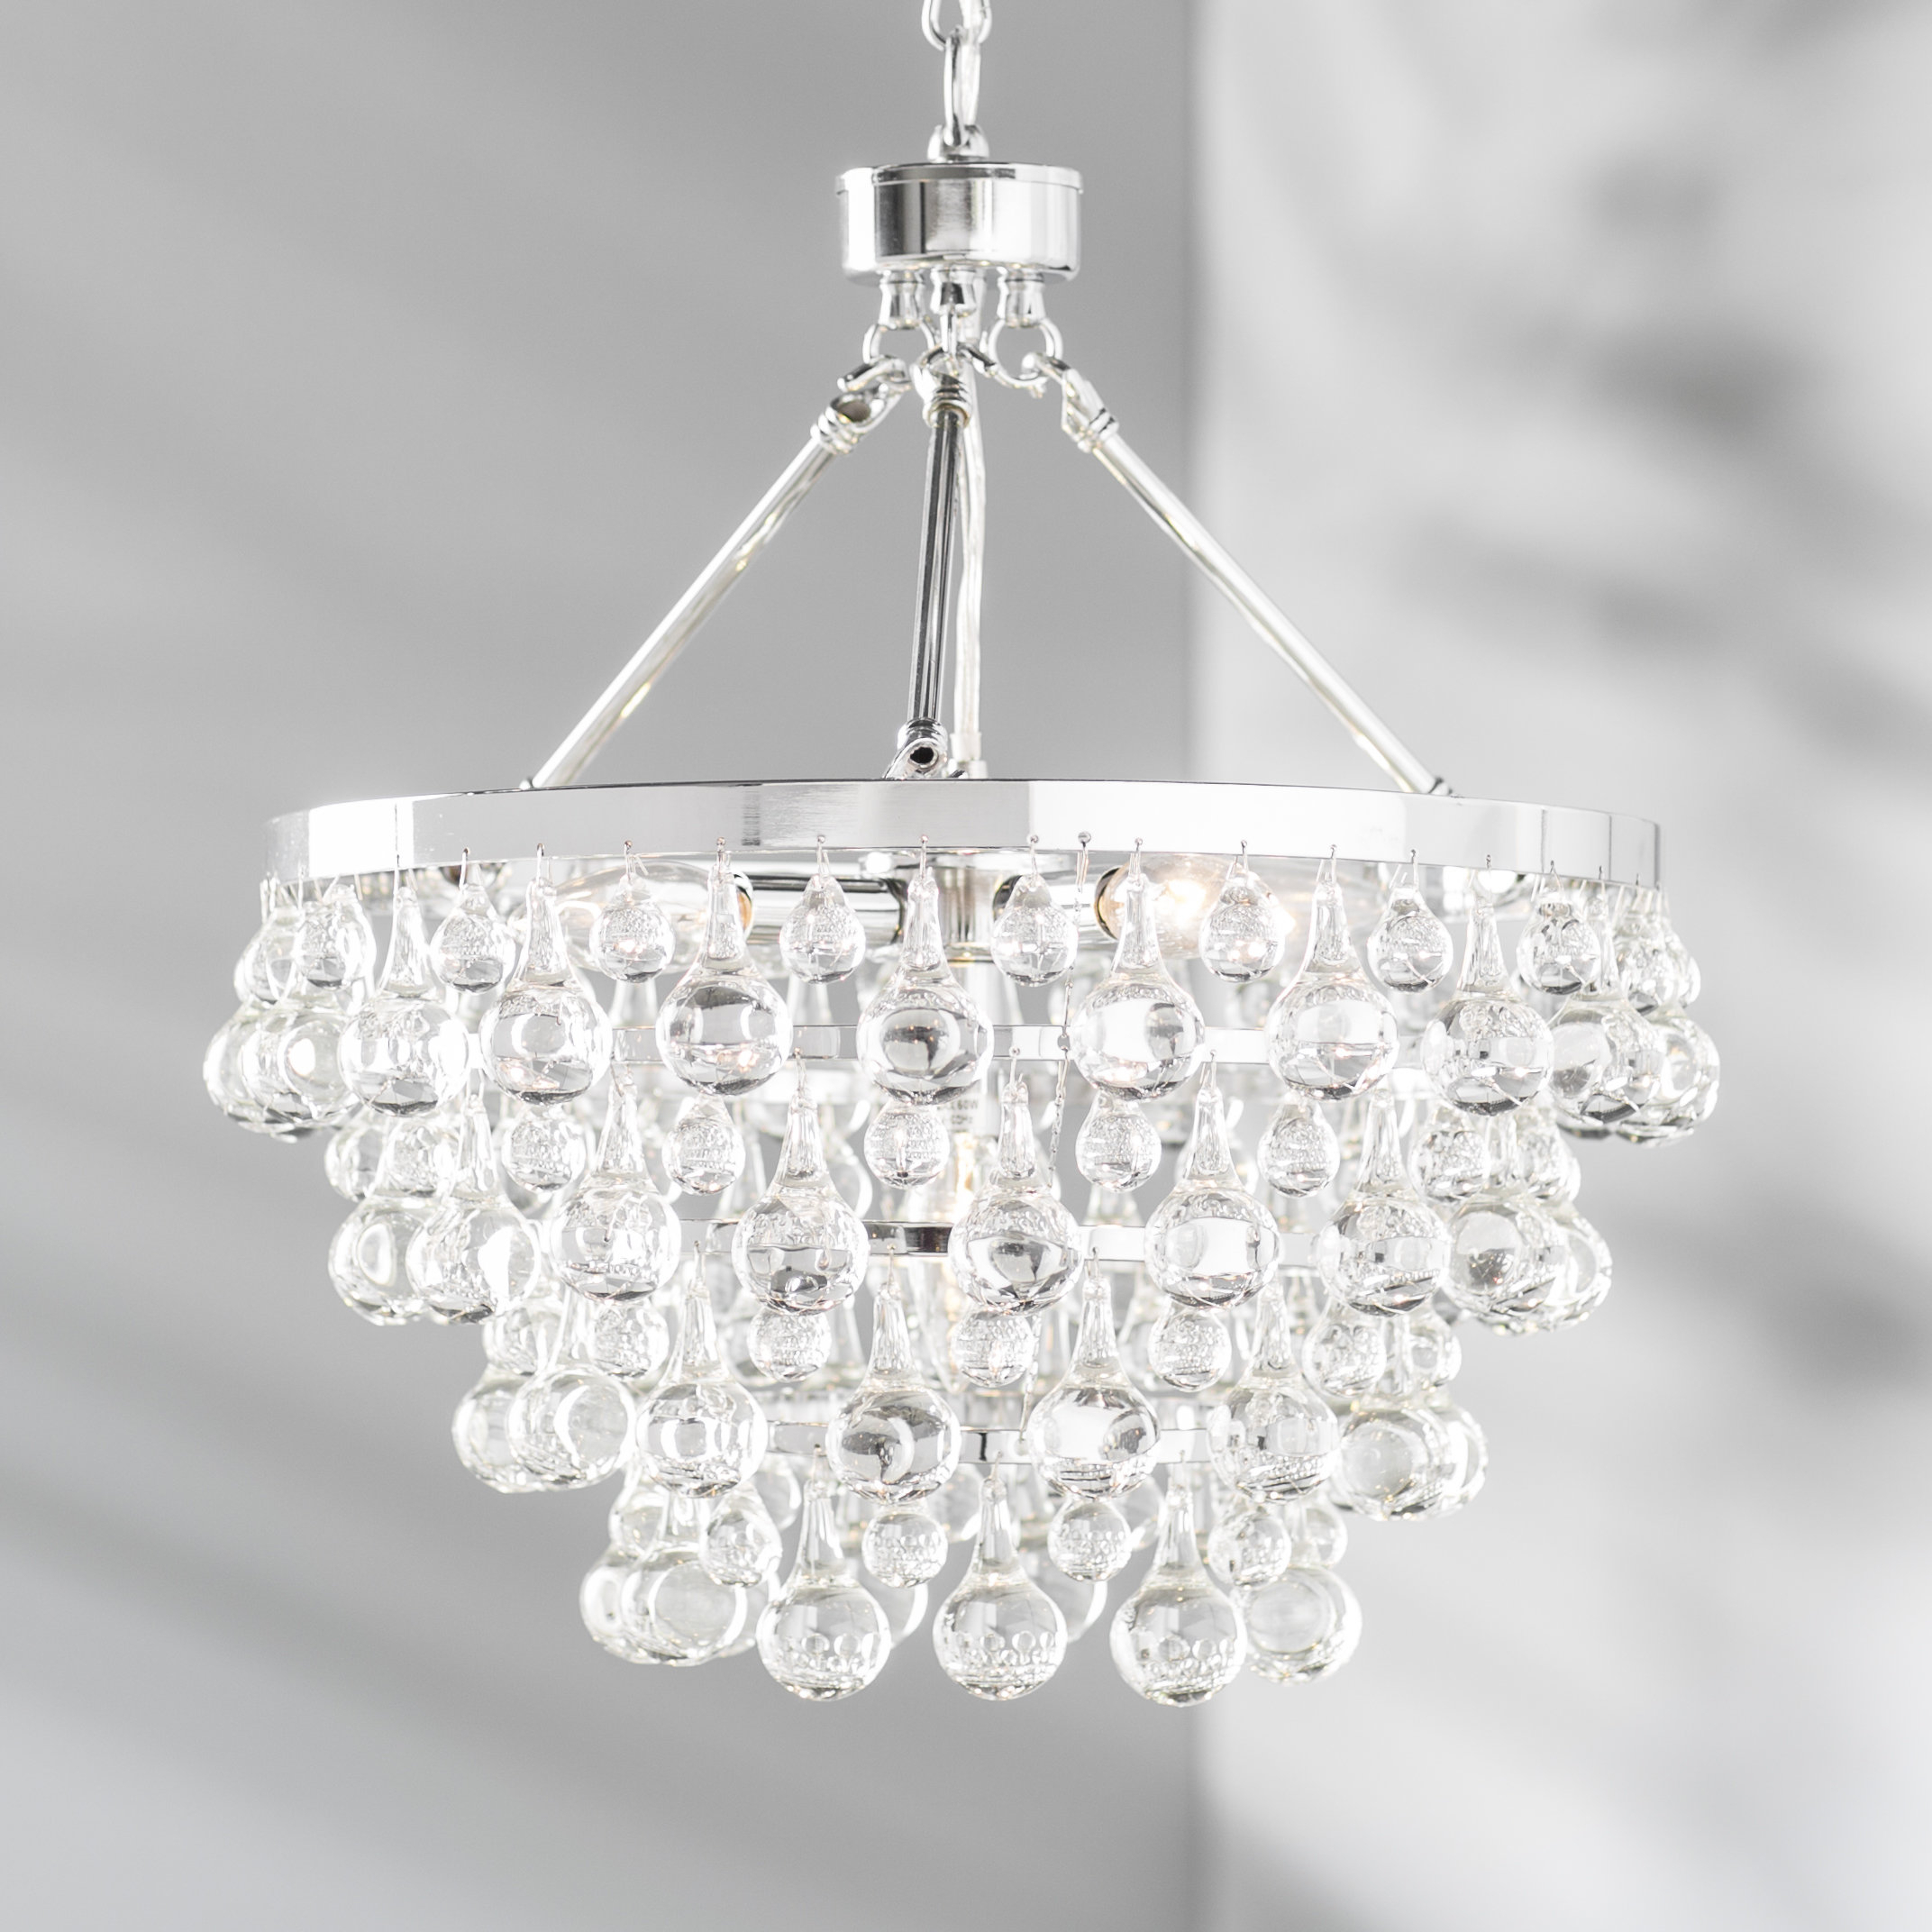 Ahern 5 Light Crystal Chandelier With Clea 3 Light Crystal Chandeliers (View 7 of 30)